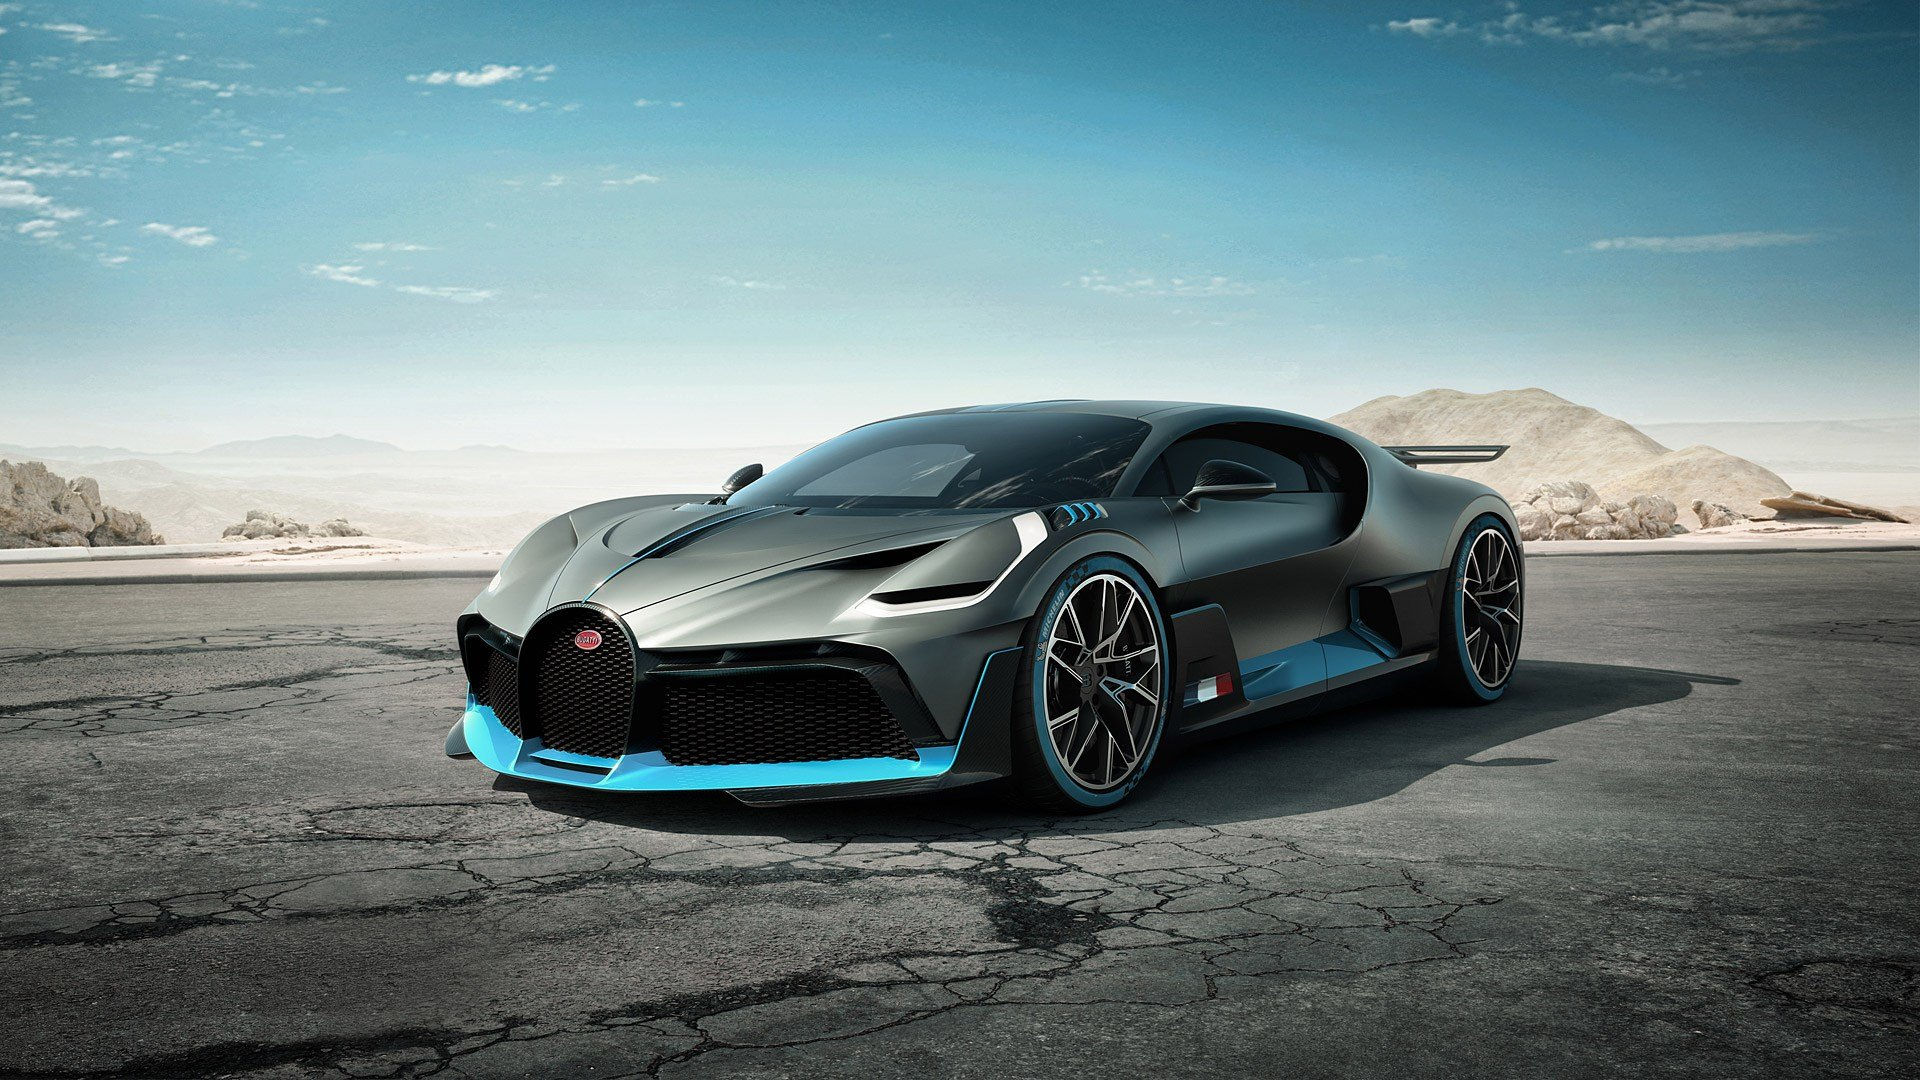 New 2019 Bugatti Divo Wallpapers Hd Images Wsupercars On This Month